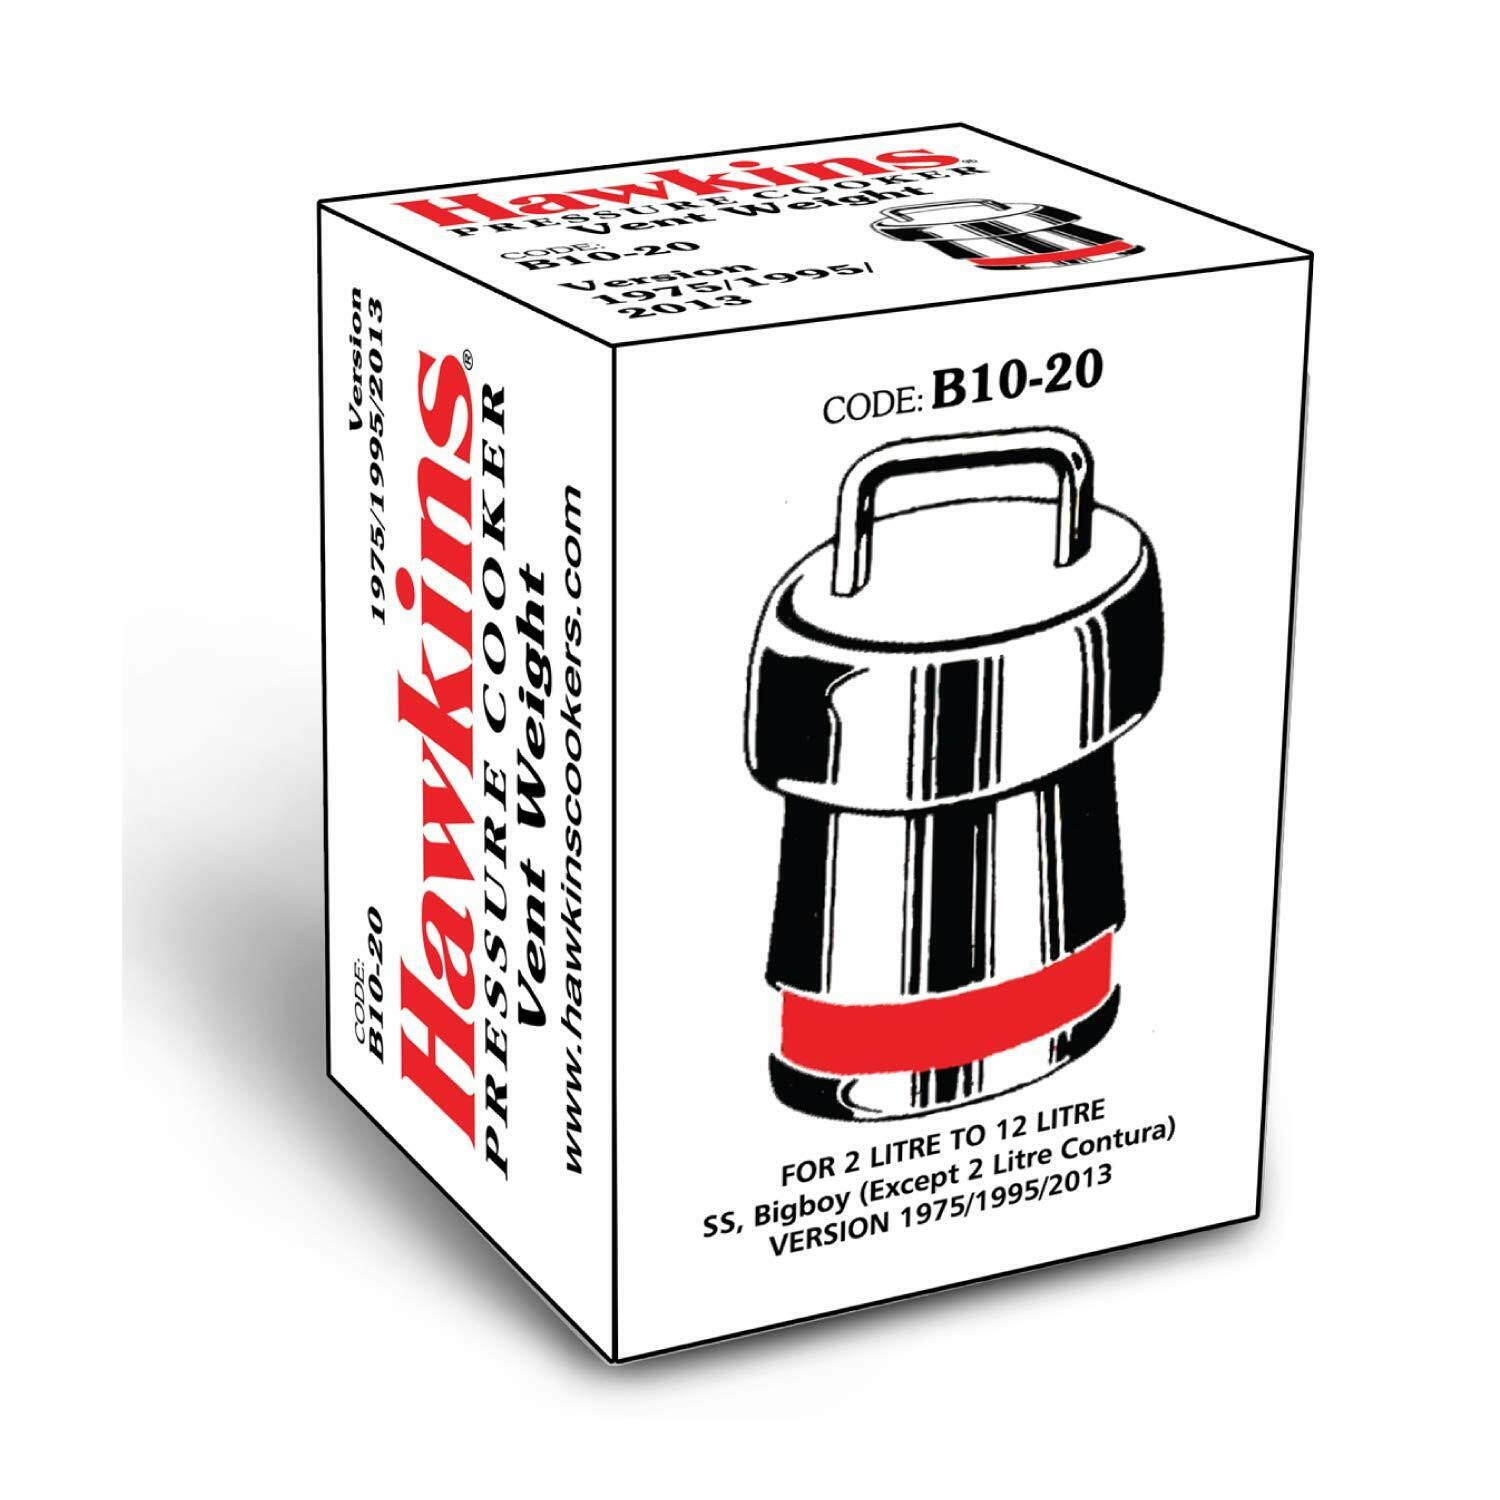 Hawkins B10-20 Brass Vent Weight Whistle for Pressure Cooker